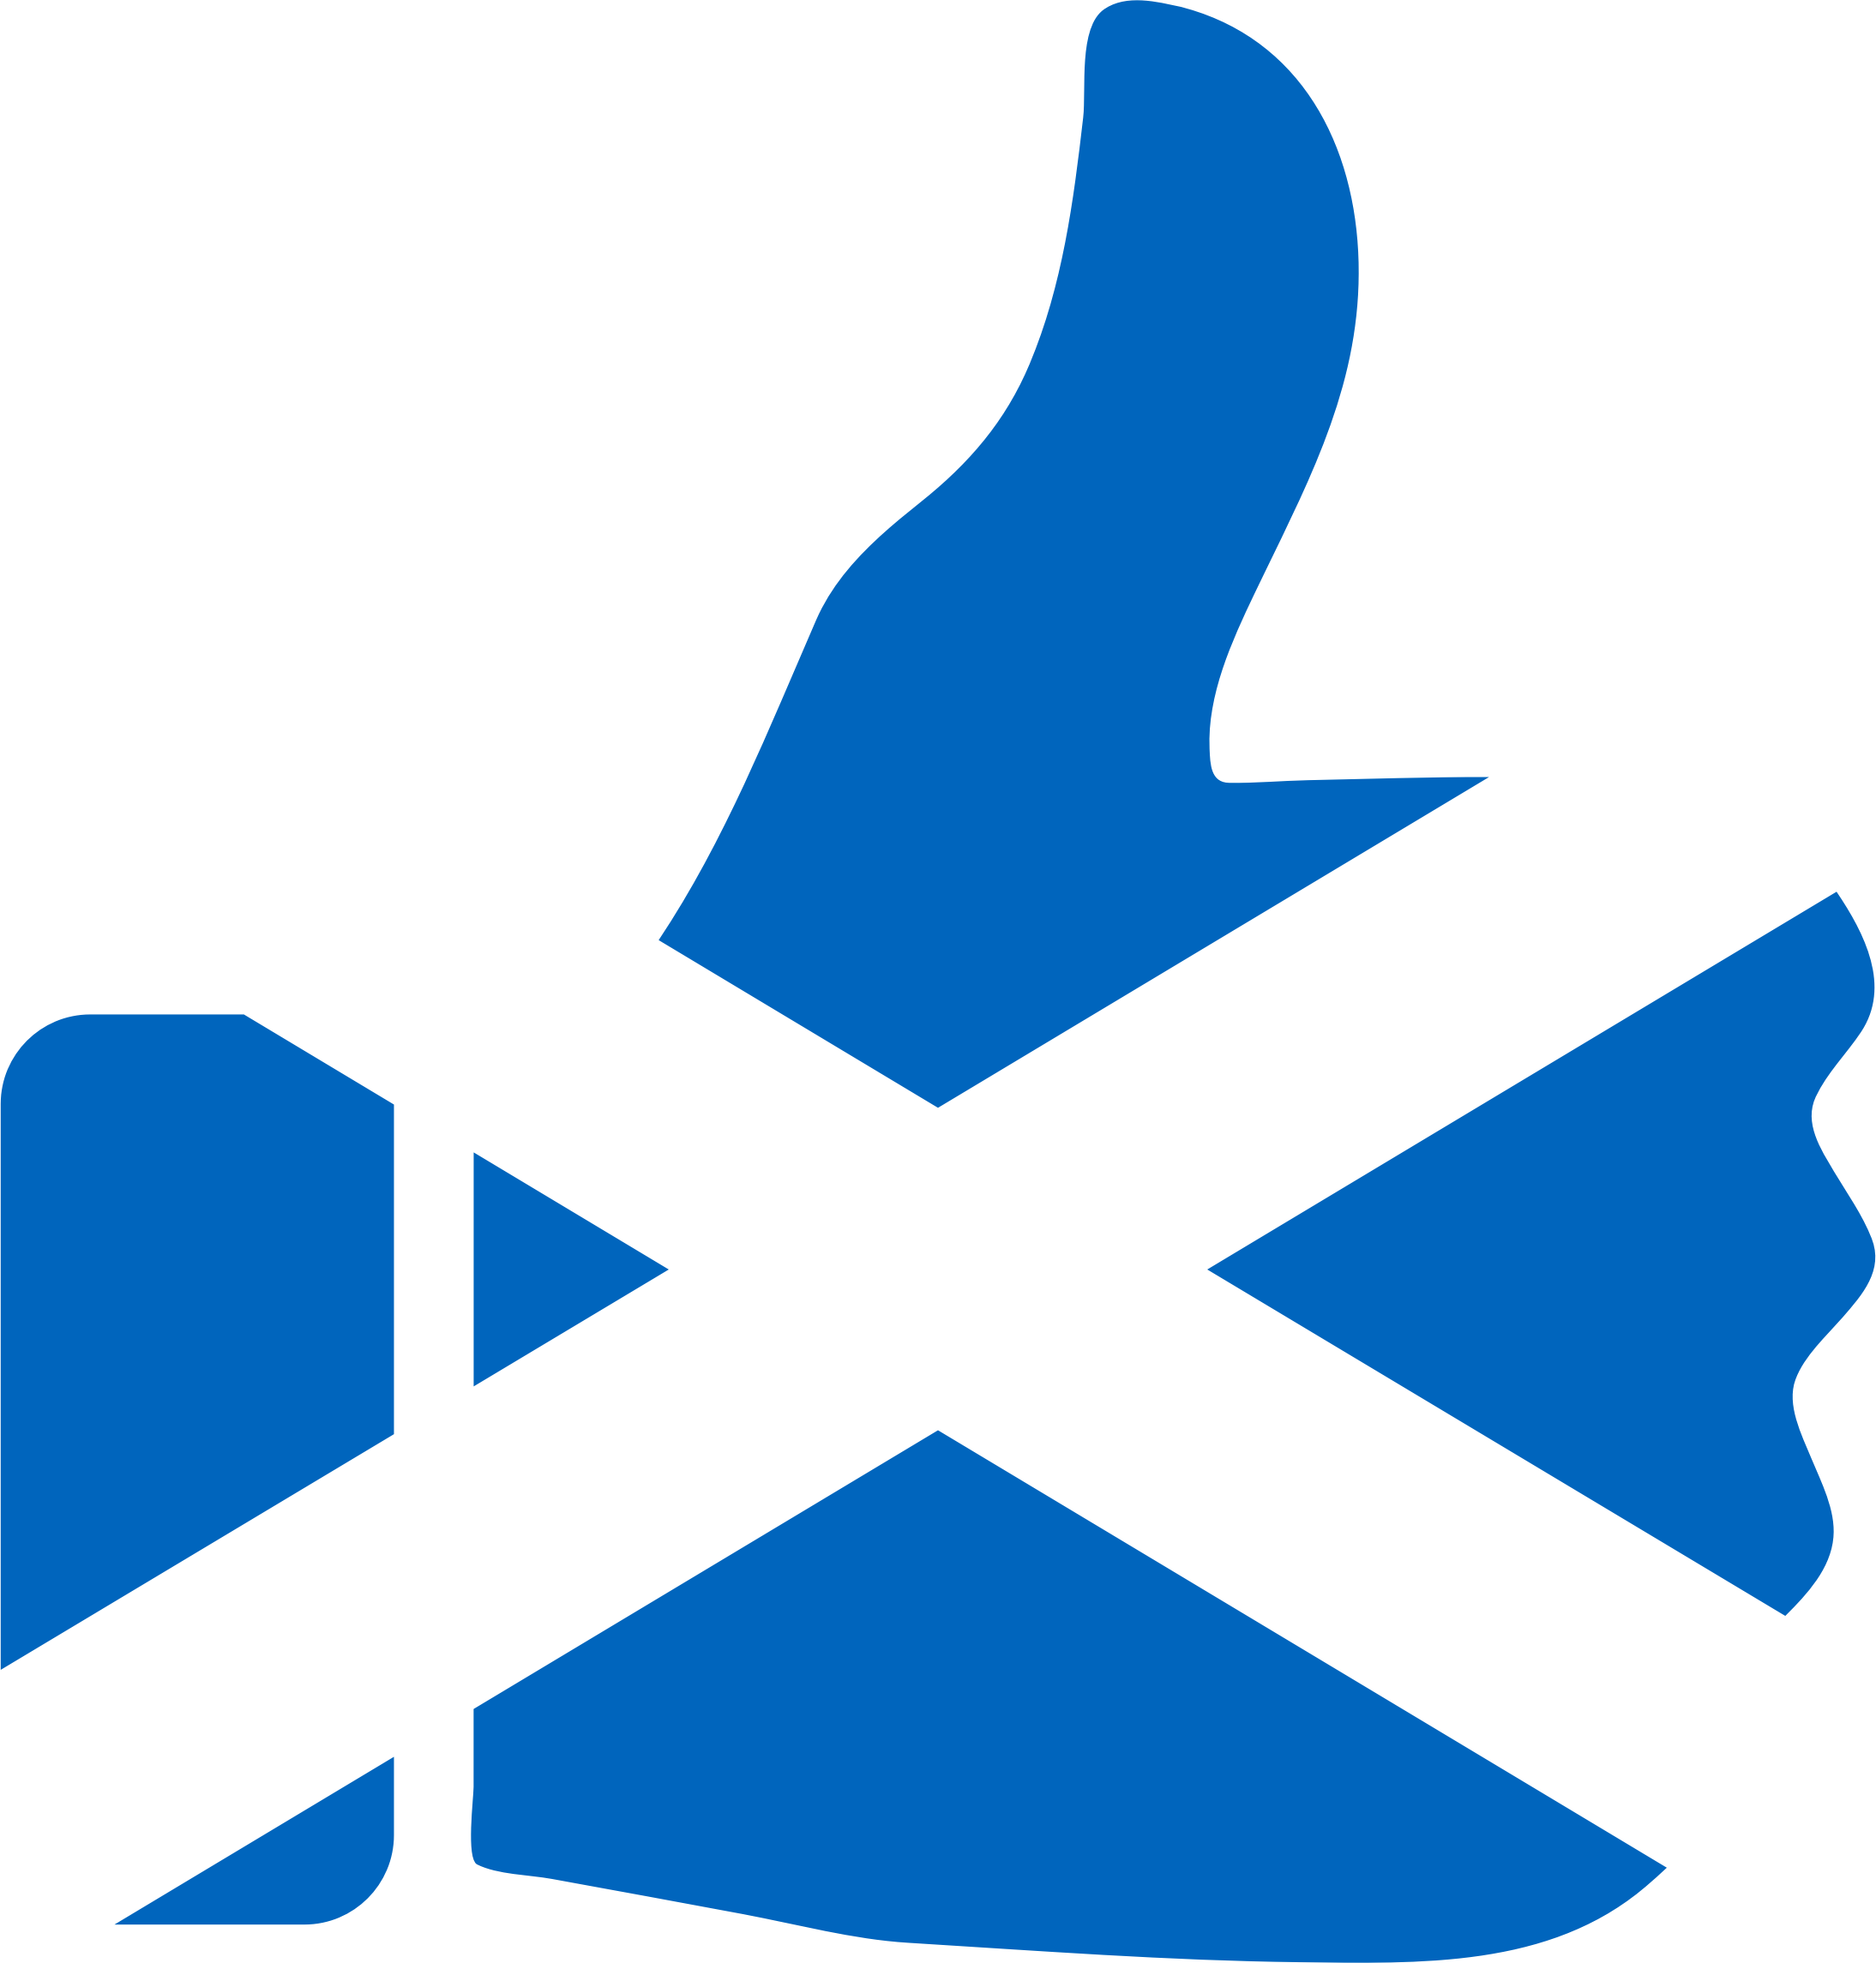 Thumbs Up Scotland by GDJ